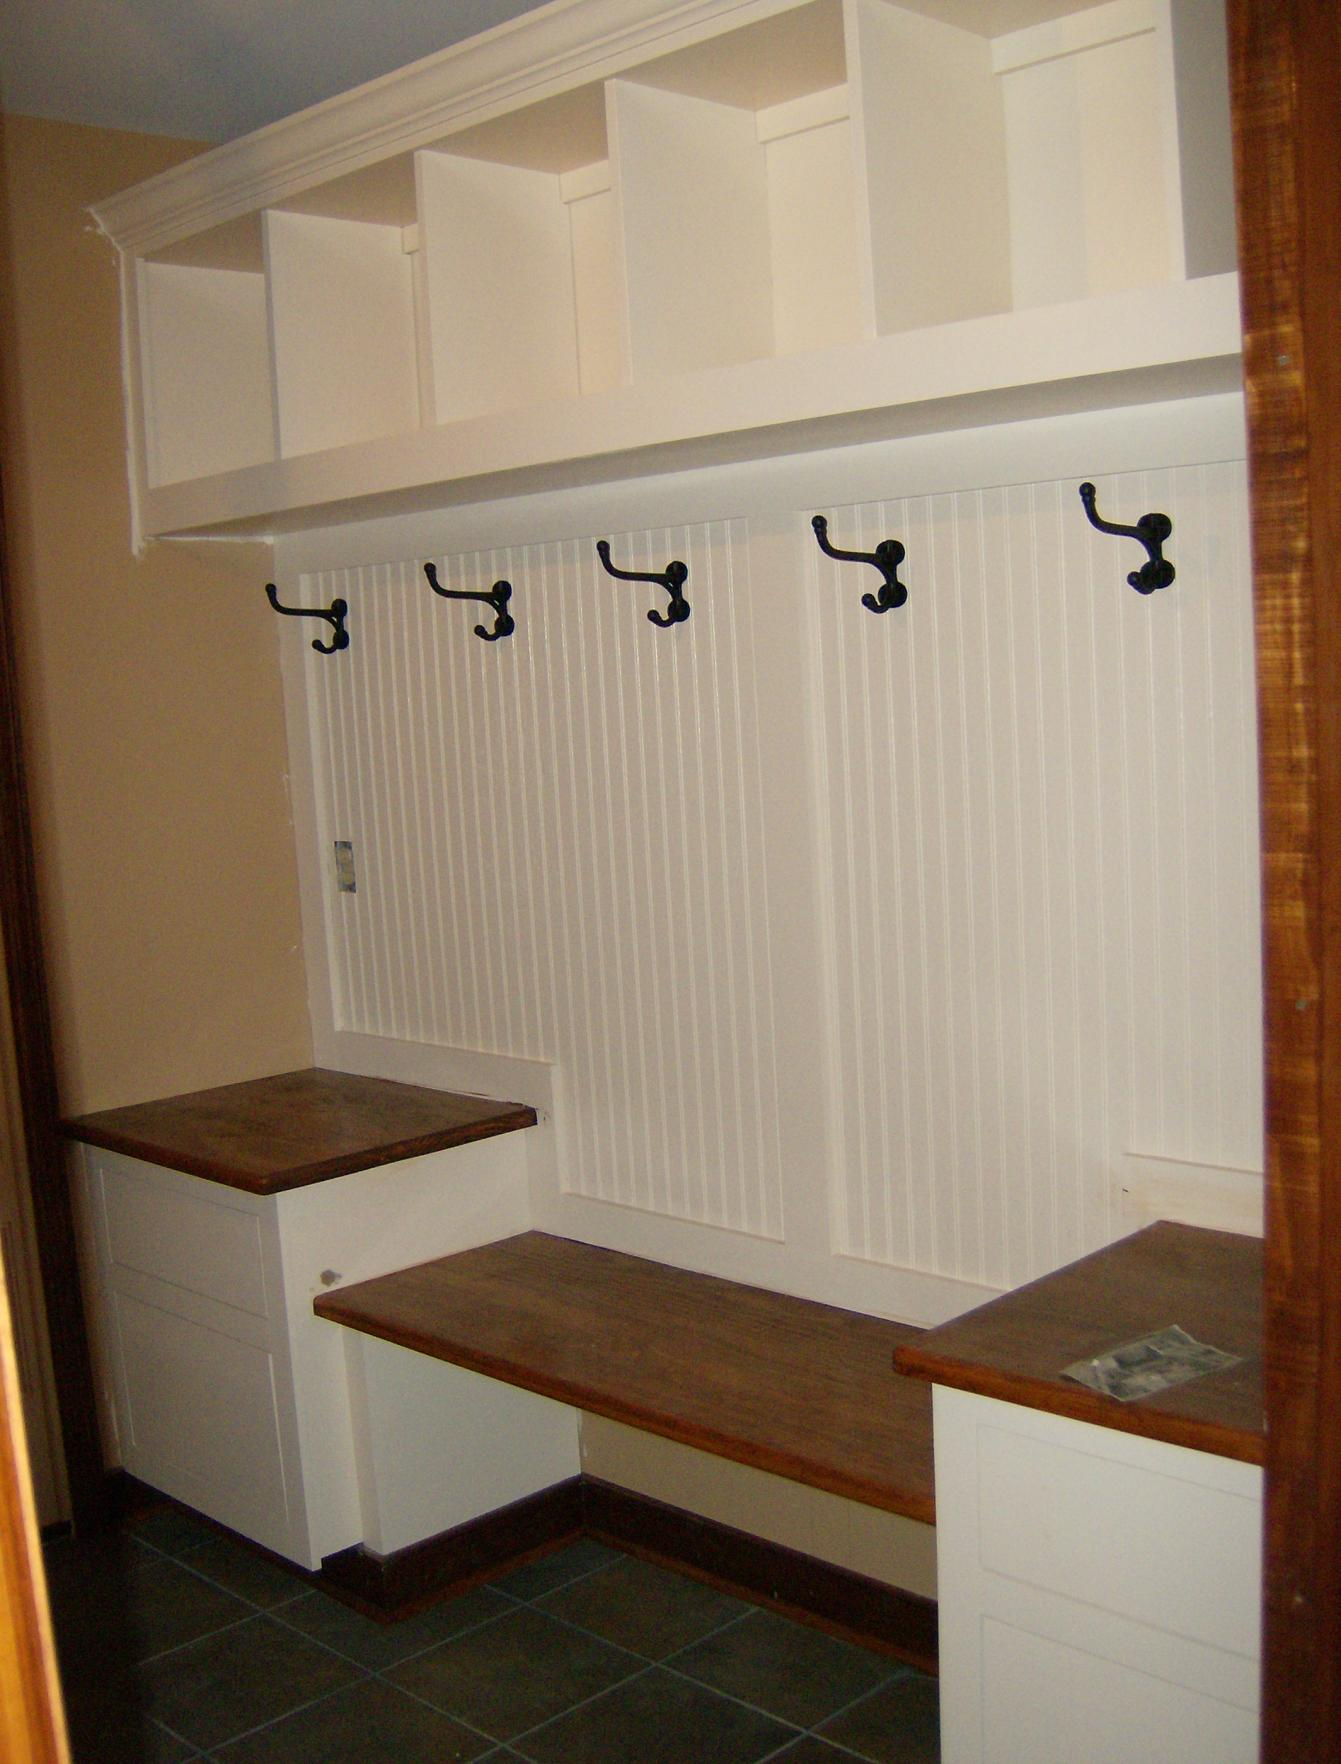 Mudroom Built-In - Finish Carpentry - Contractor Talk